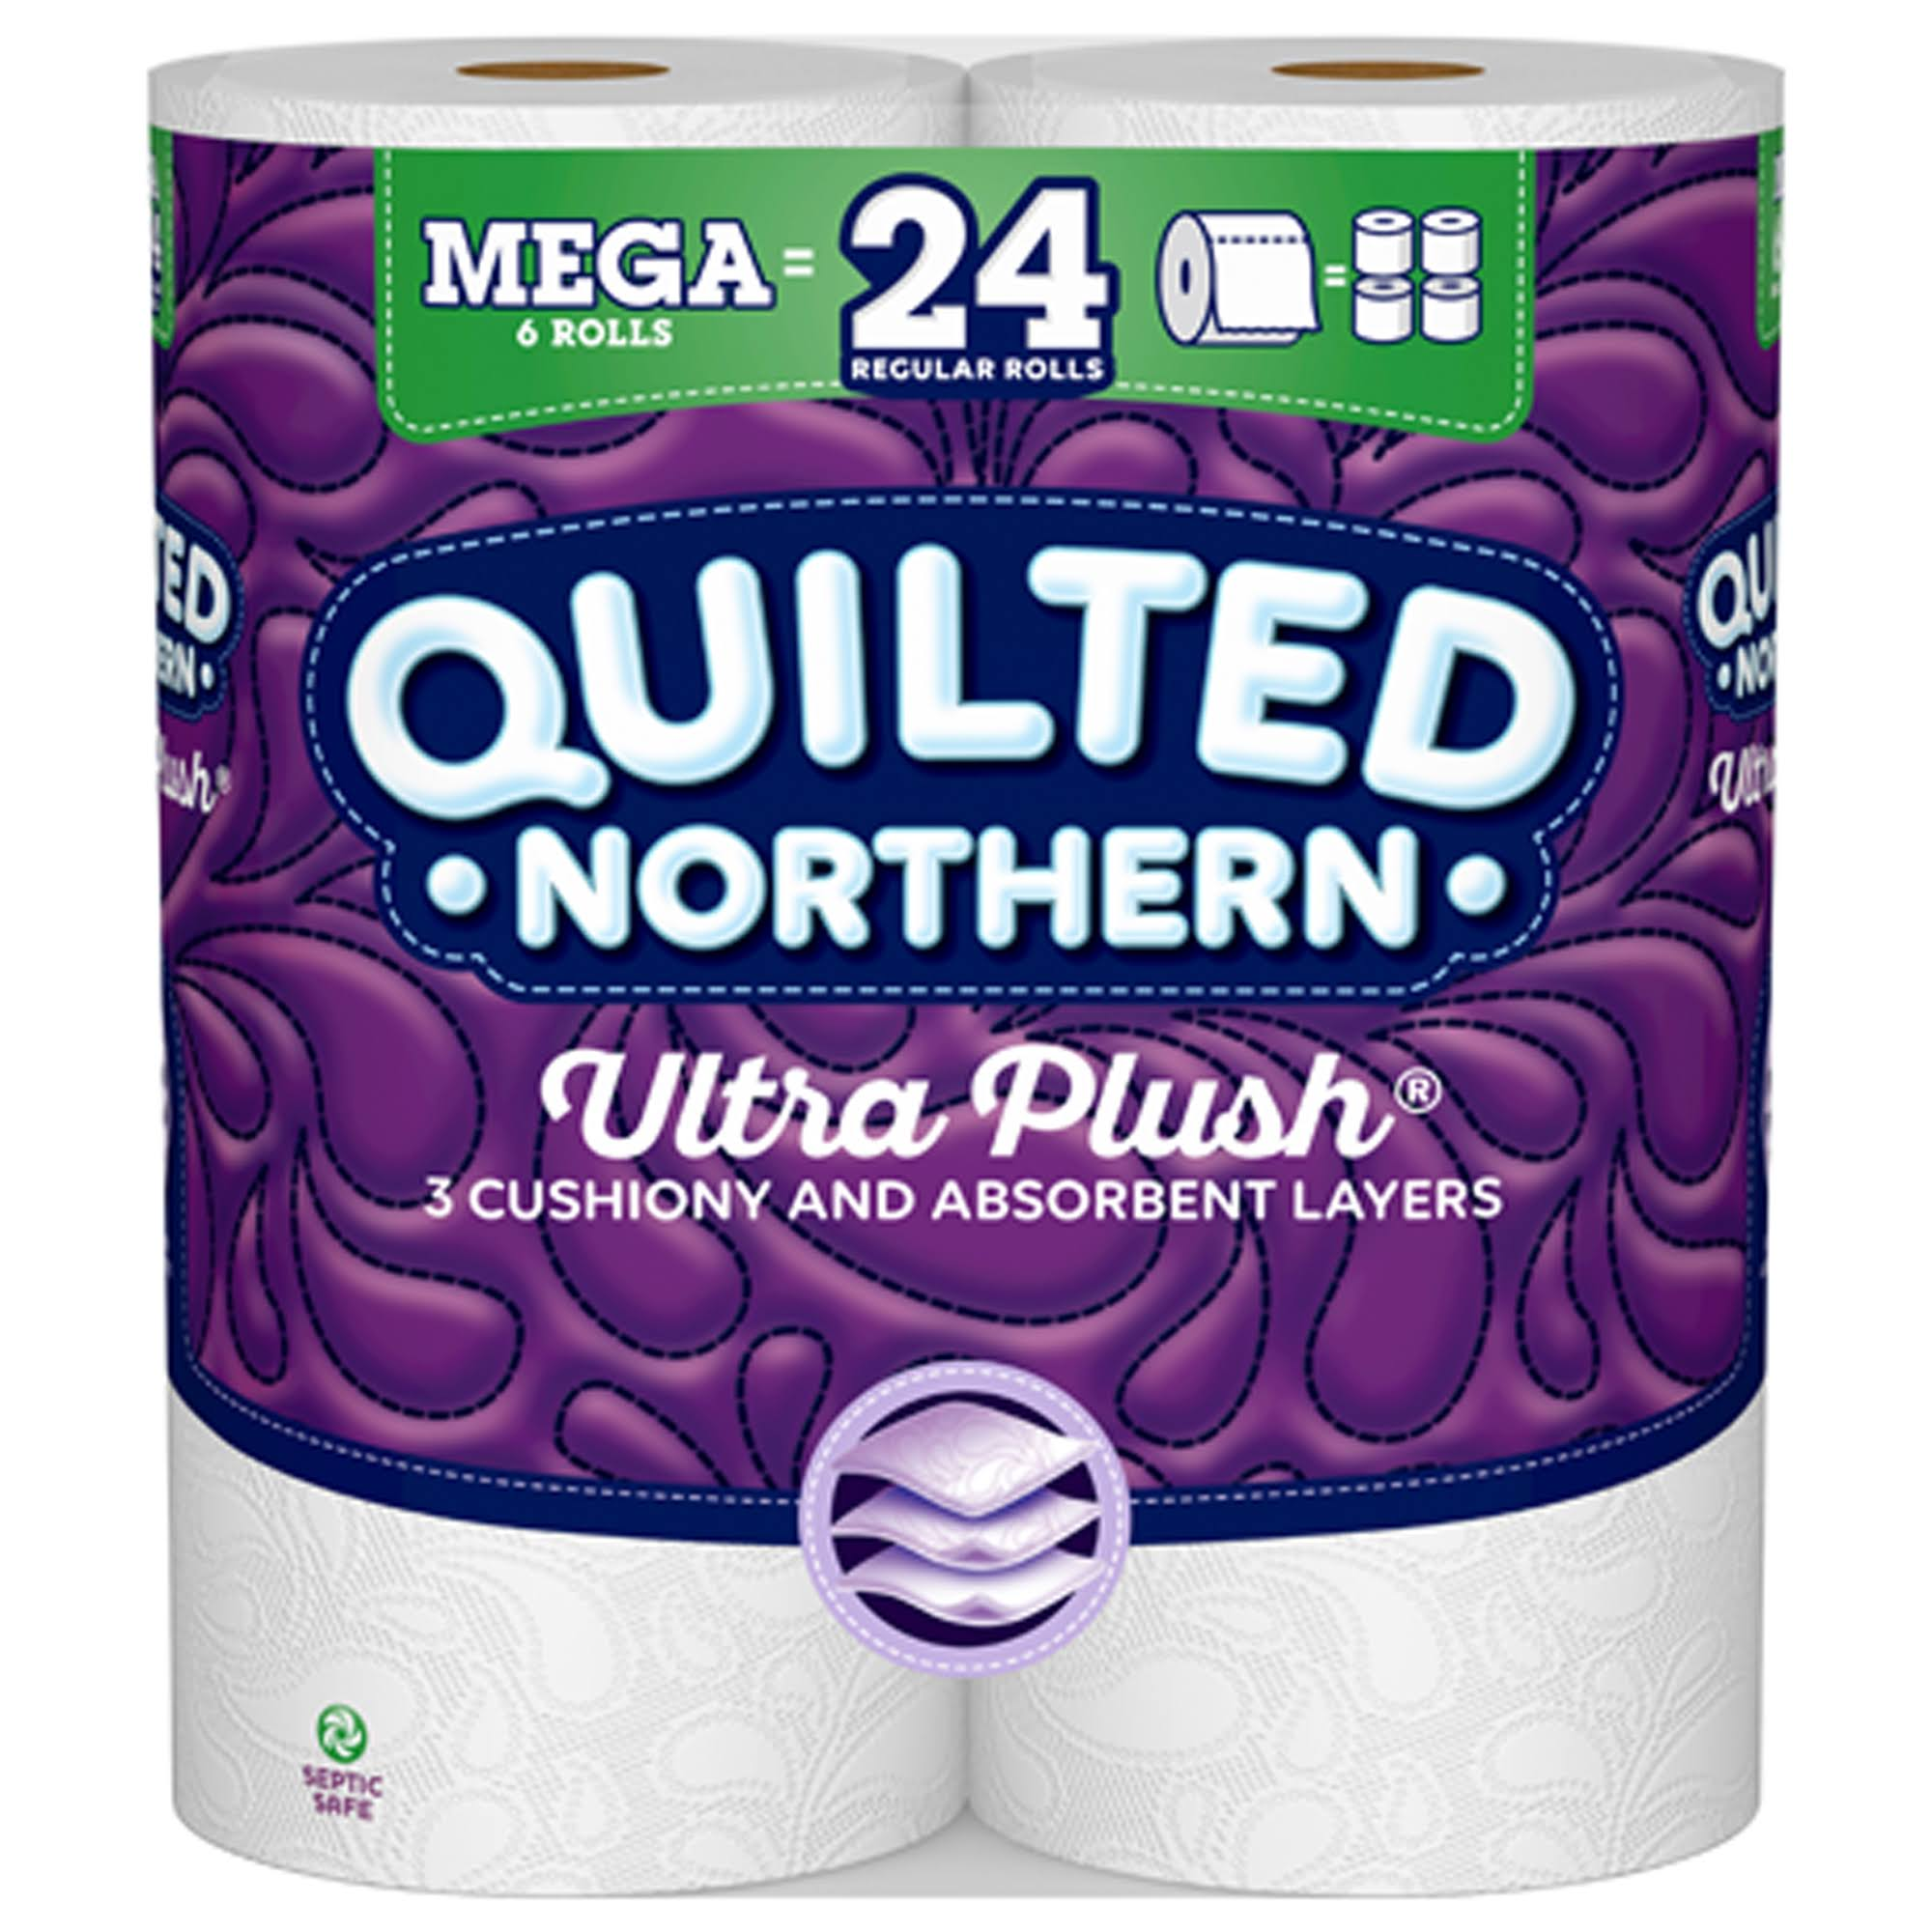 Quilted Northern Ultra Plush Toilet Paper - 6 Rolls